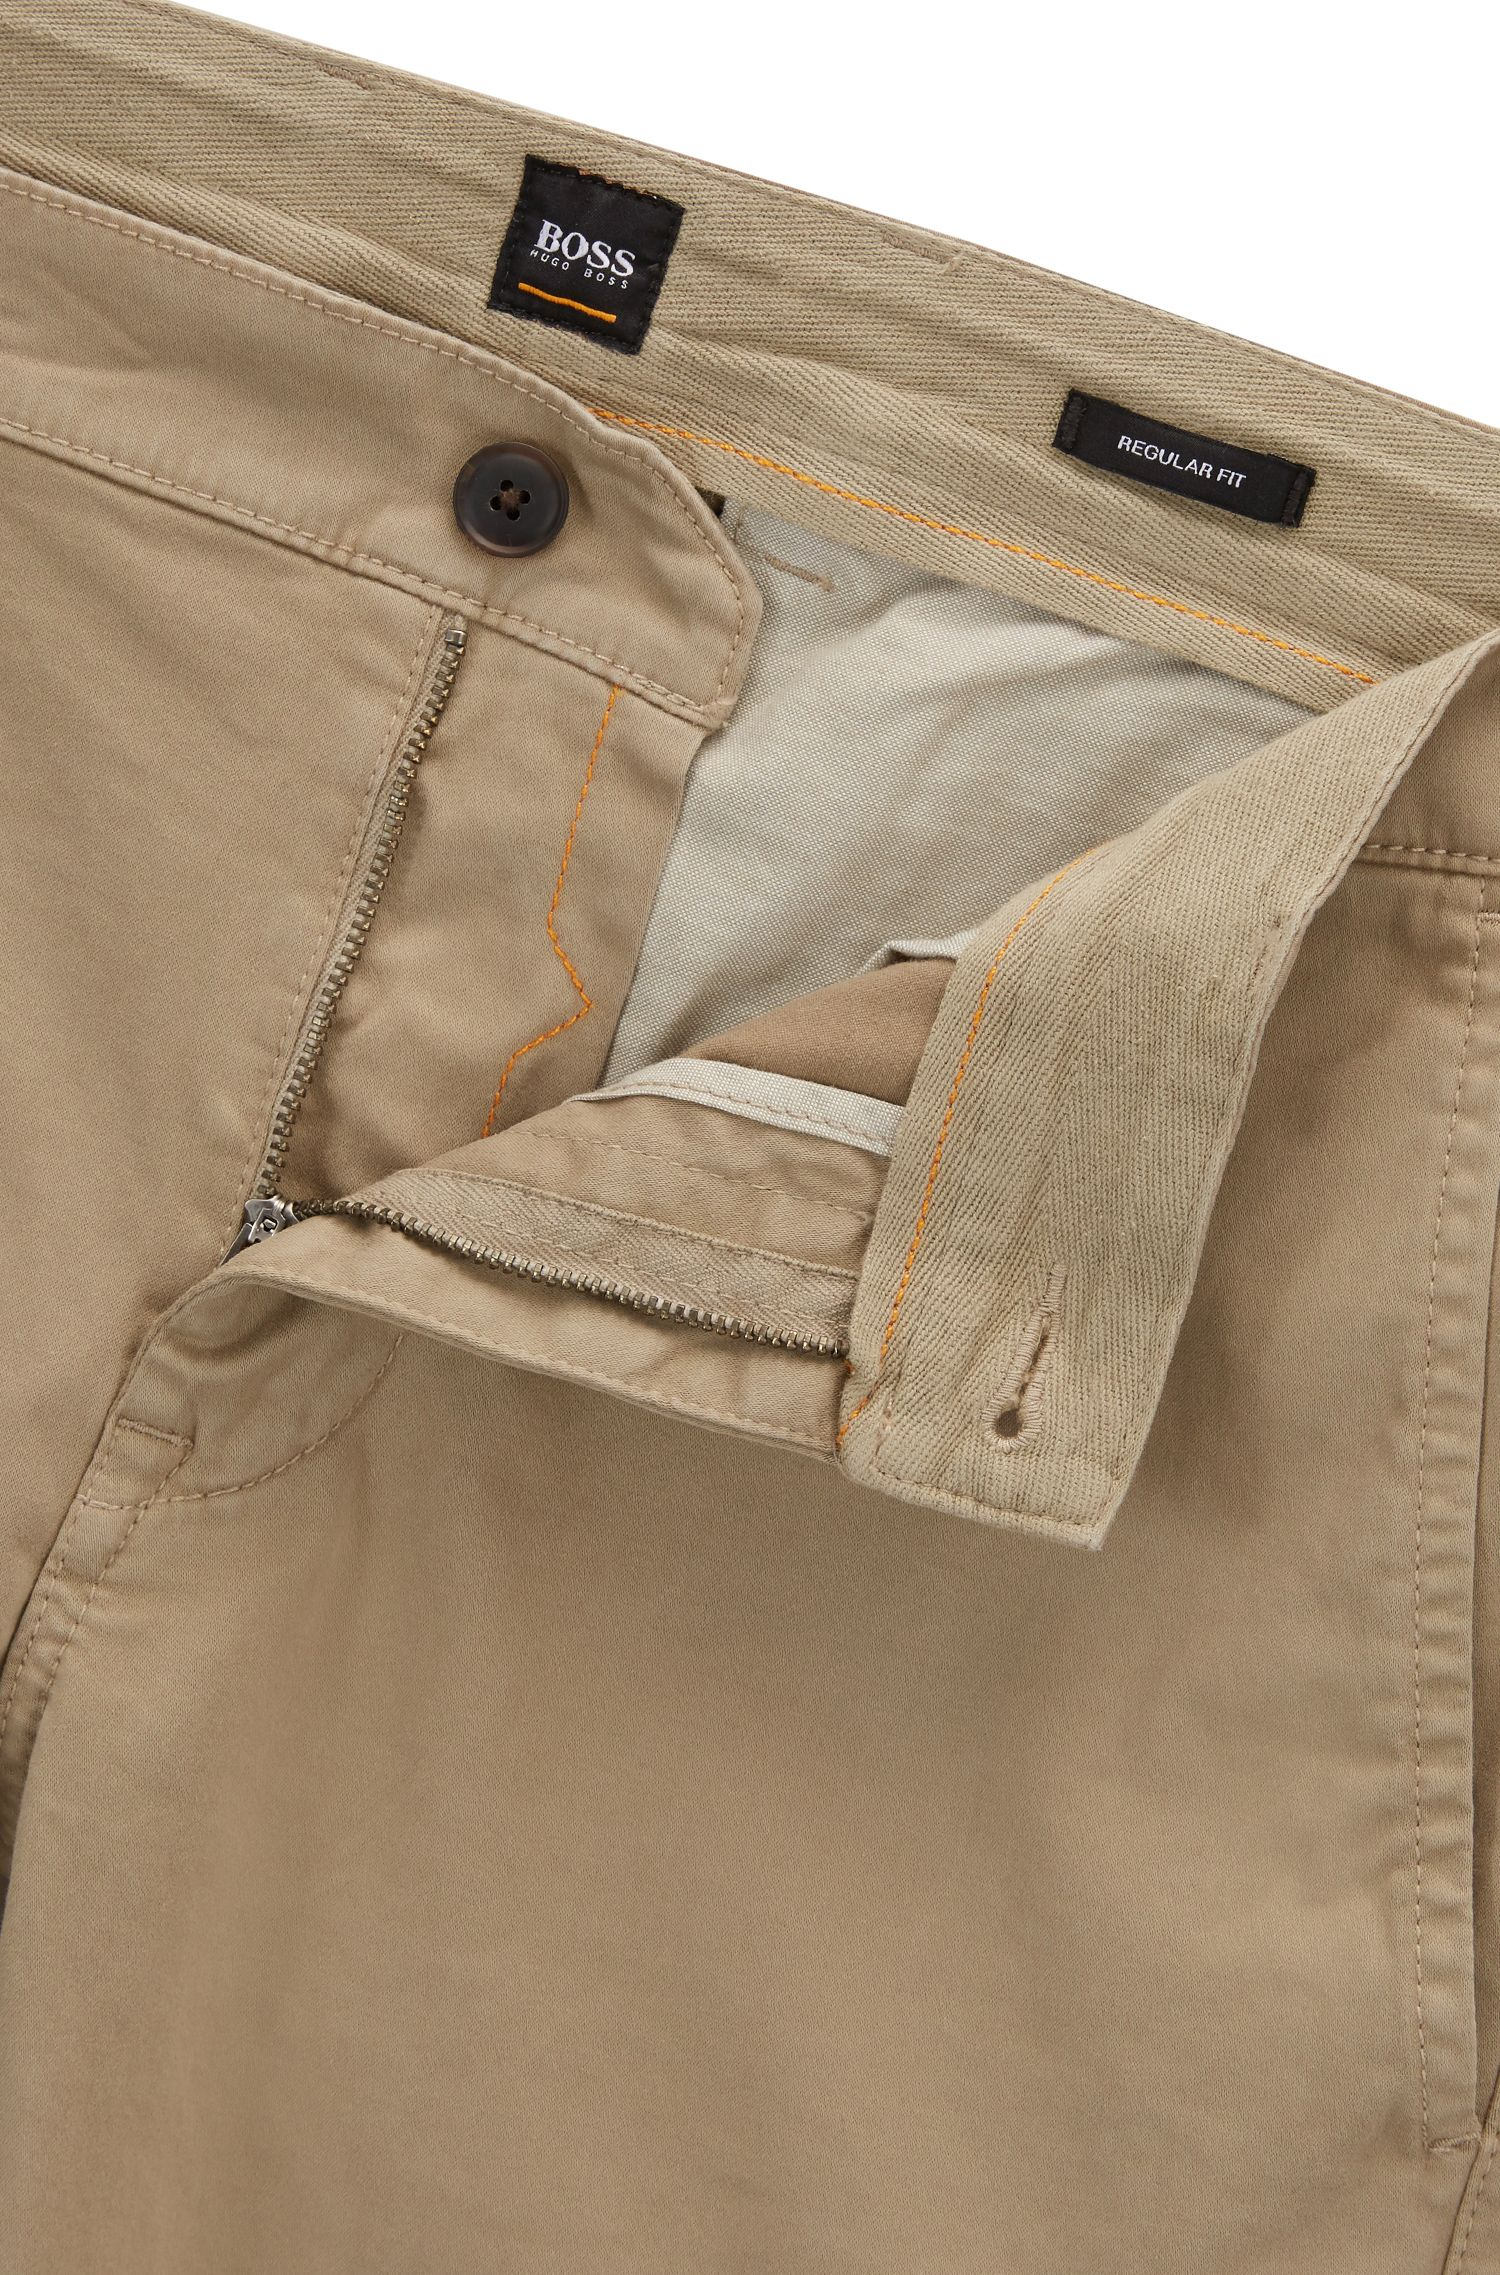 Regular-Fit Chino-Shorts aus elastischer Baumwolle